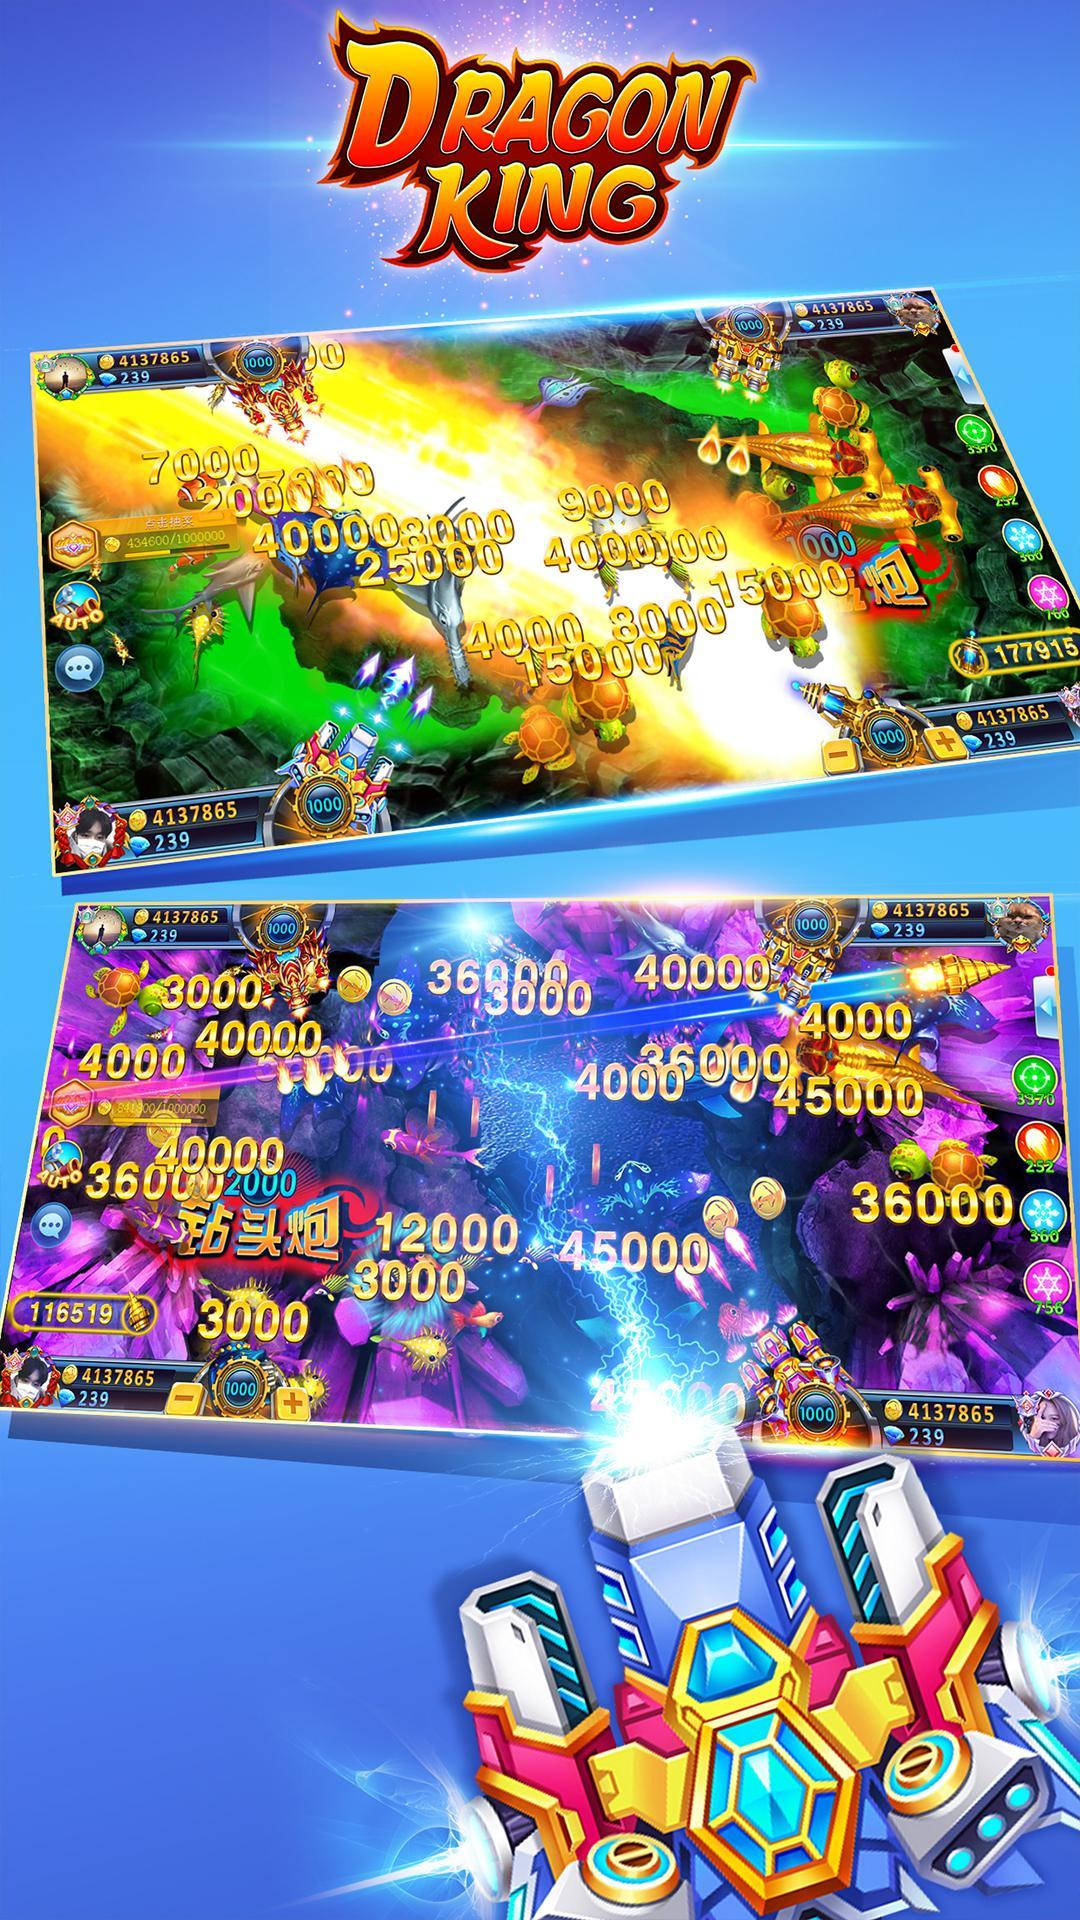 Dragon King Fishing Online-Arcade  Fish Games 5.2.0 Screenshot 17